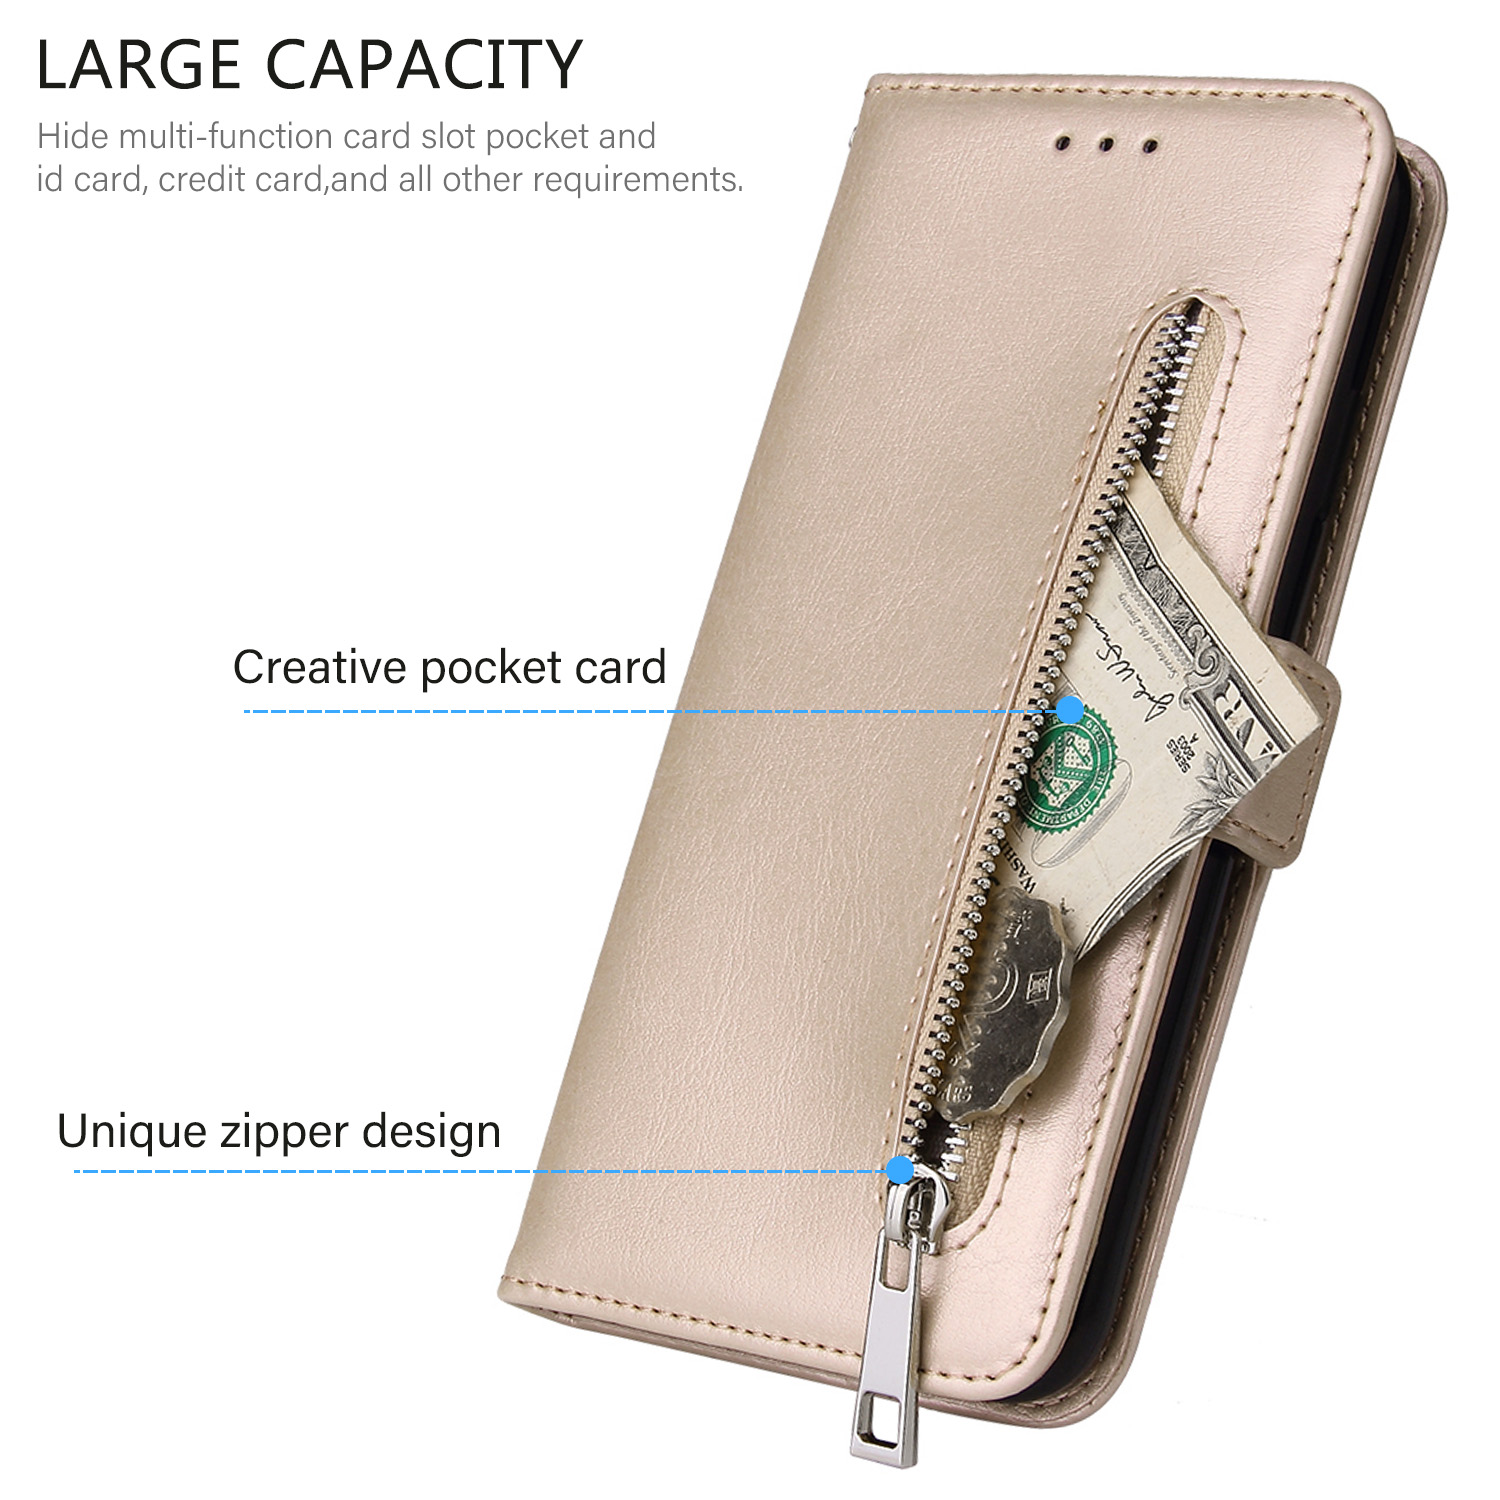 Details about For Huawei Nova 3i 3e P30 Pro Mate 20 Y5 Y6 Y7 Case Leather  Zipper Wallet Cover